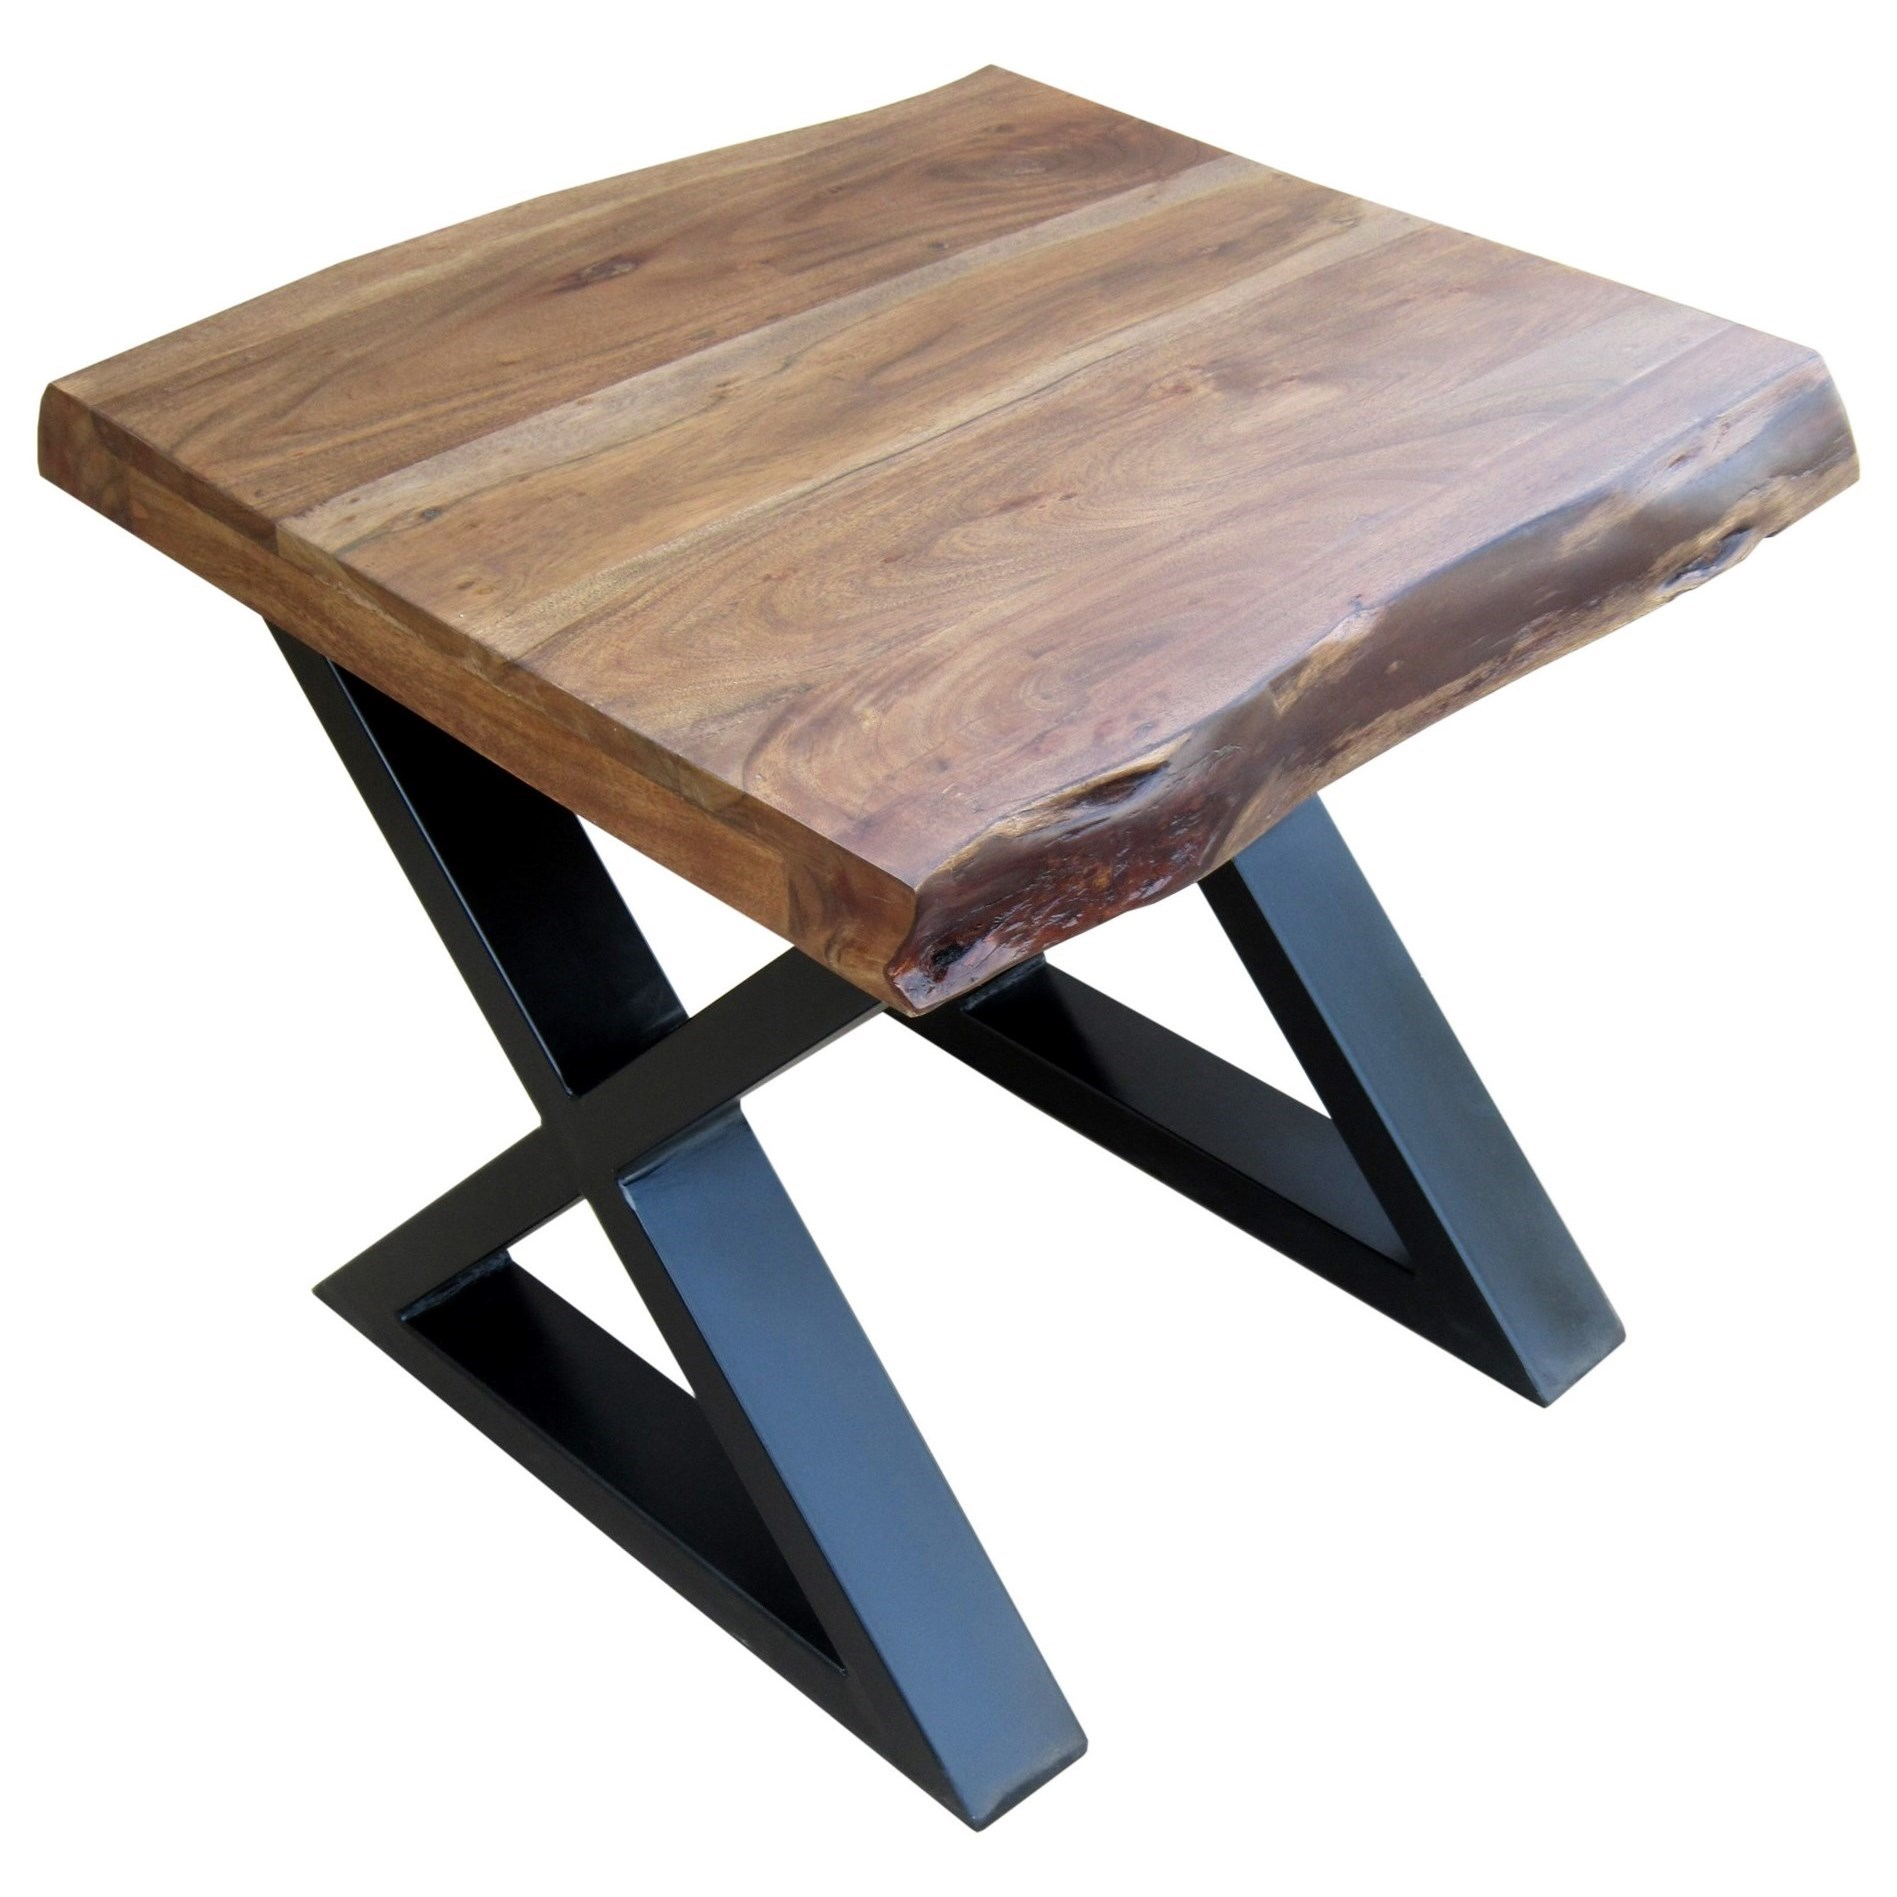 Stein World Living On The Edge End Table - Item Number: 321-021